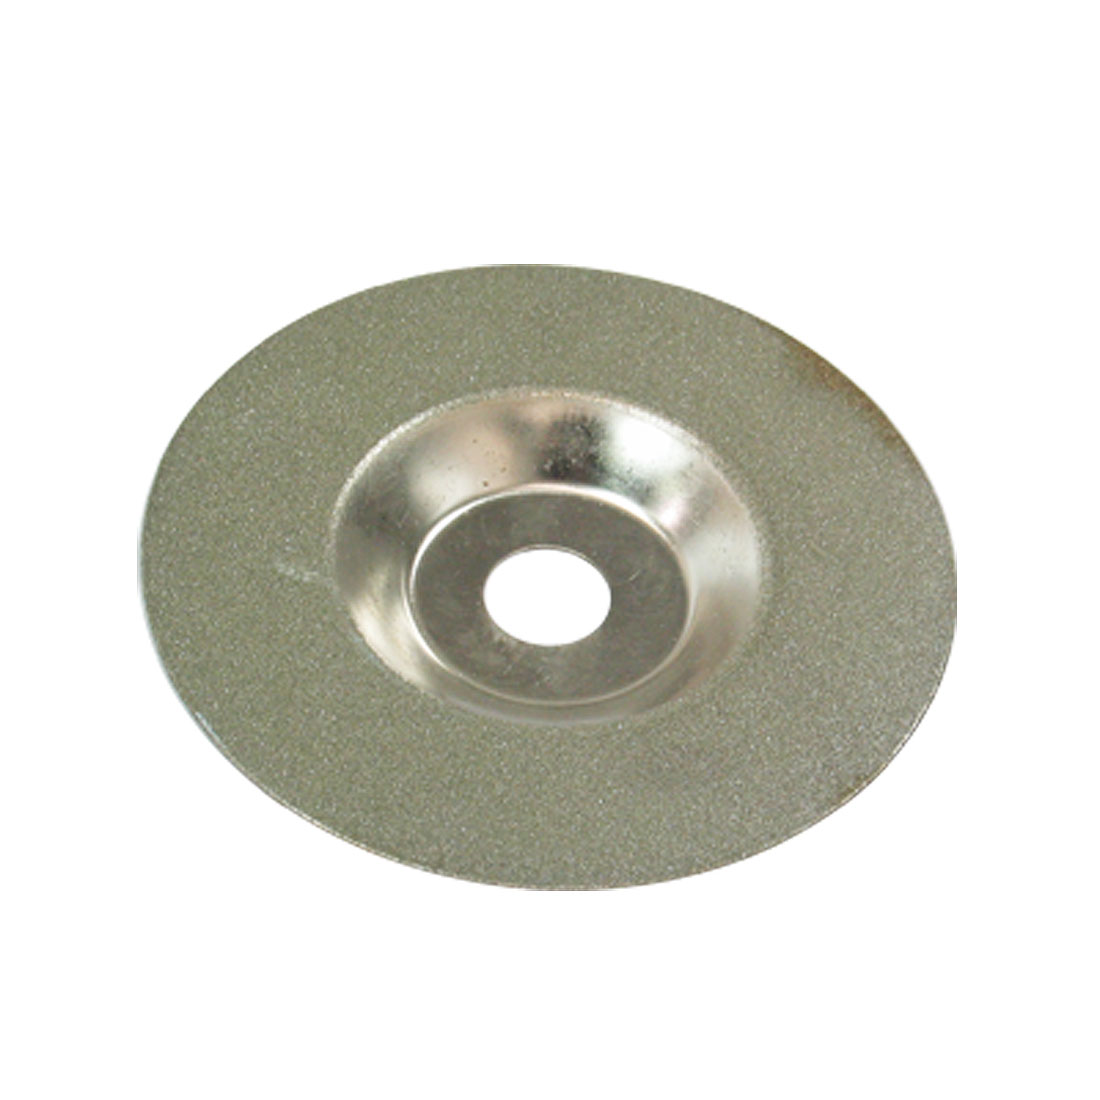 Reduced Sparking Round Wheel Glass Diamond Grinding Disc 3.8""